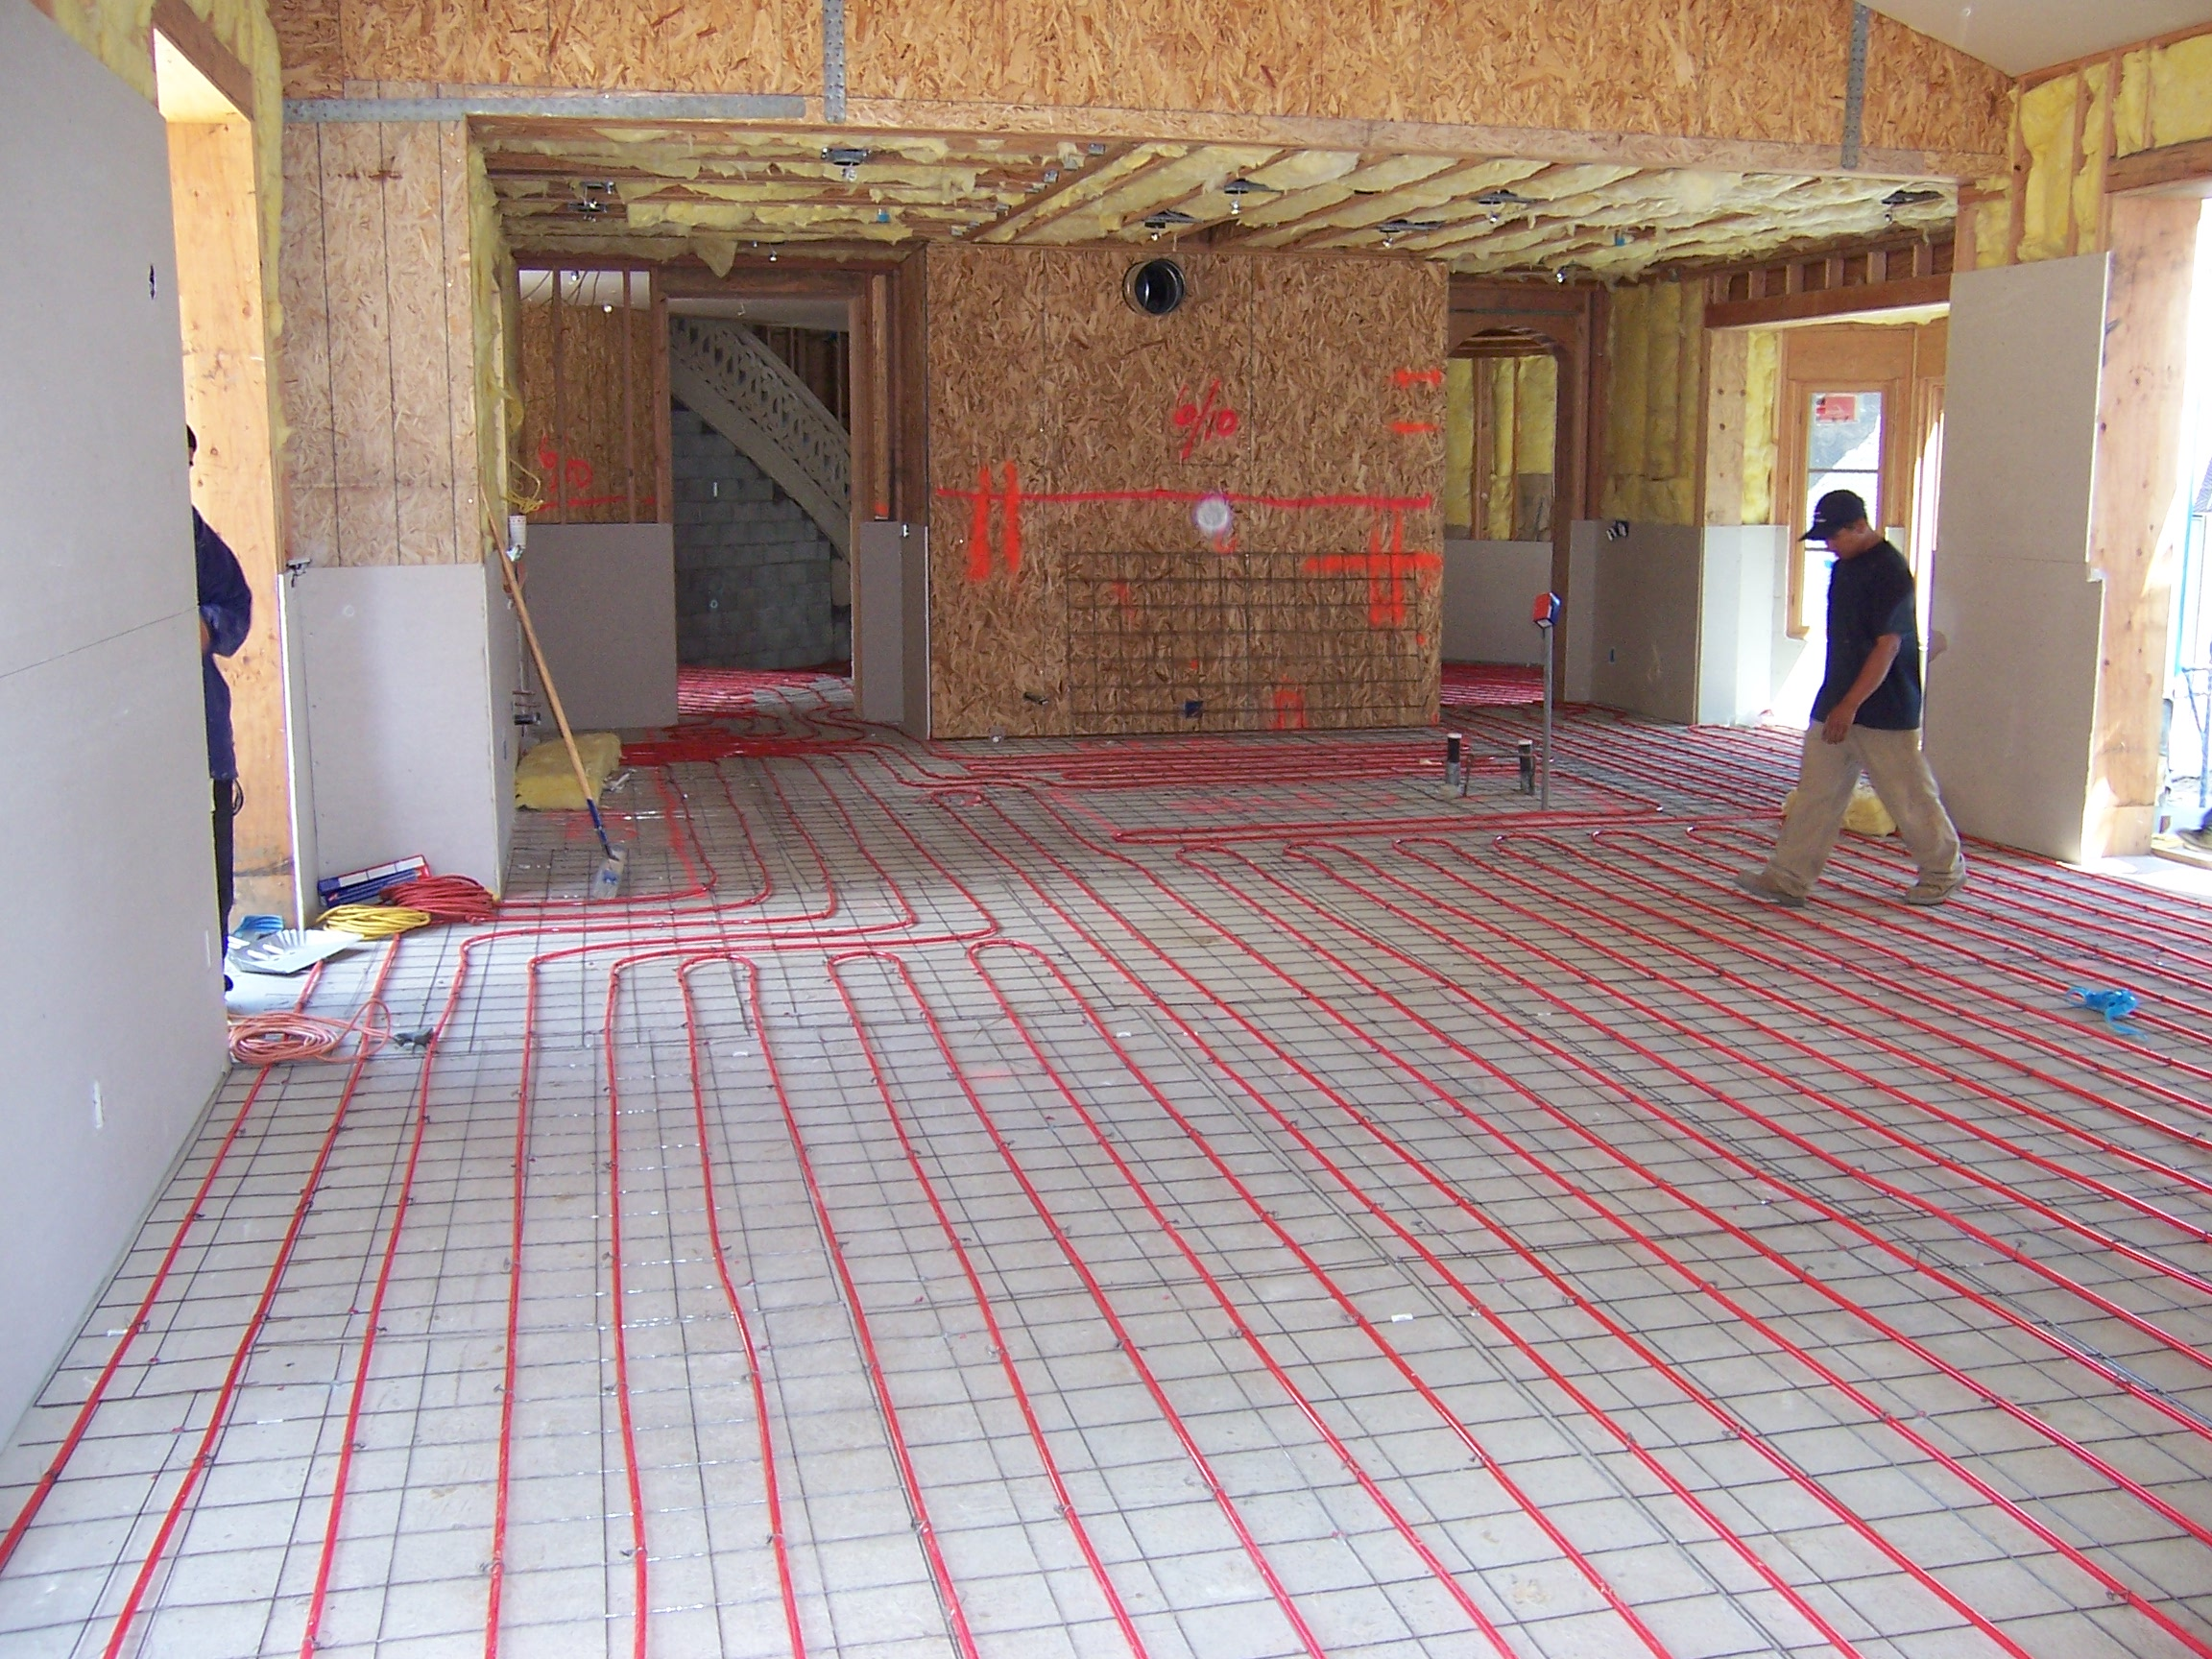 How To Install A Radiant Floor Heating System